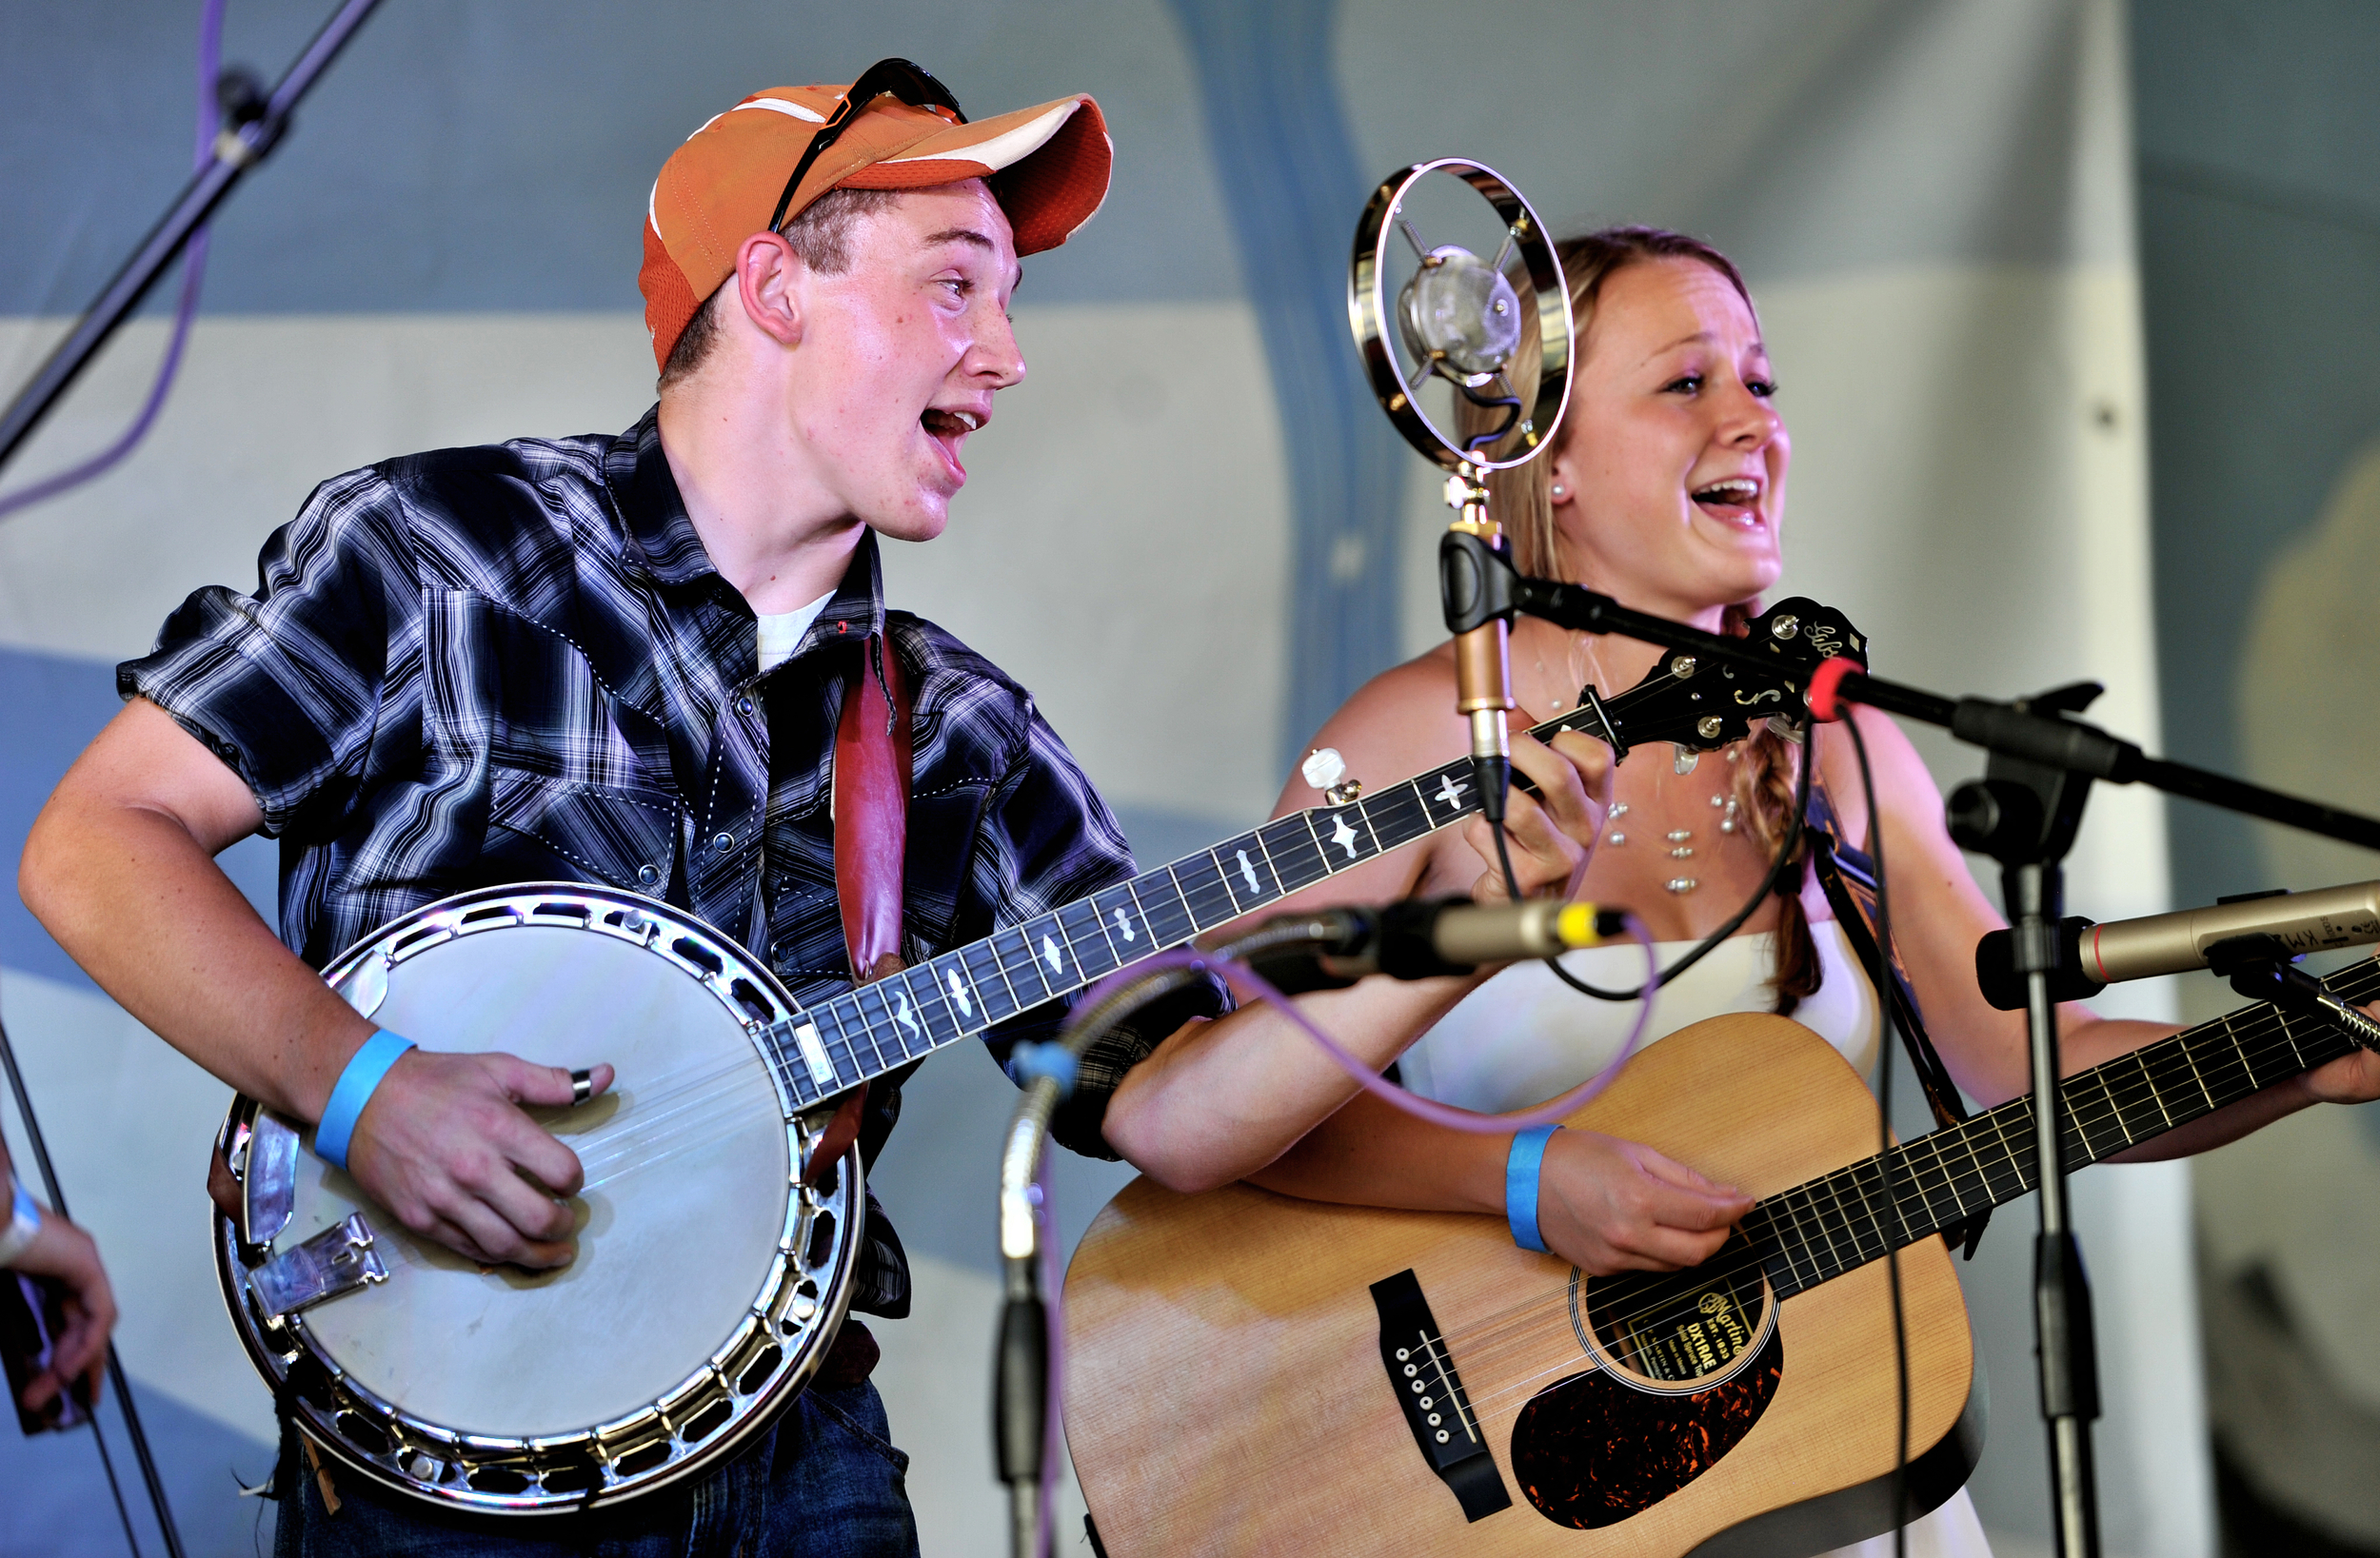 """Conlan Kerschner of Adamstown, PA, performs a cover of """"You Are My Sunshine"""" with fellow band-member Maegan Weinhold of Denver, PA, during the single-mic band competition at Mountain Folk Fest in Ruscombmanor Township, PA, on June 19, 2016. (Reading Eagle: Sarah Stier)"""